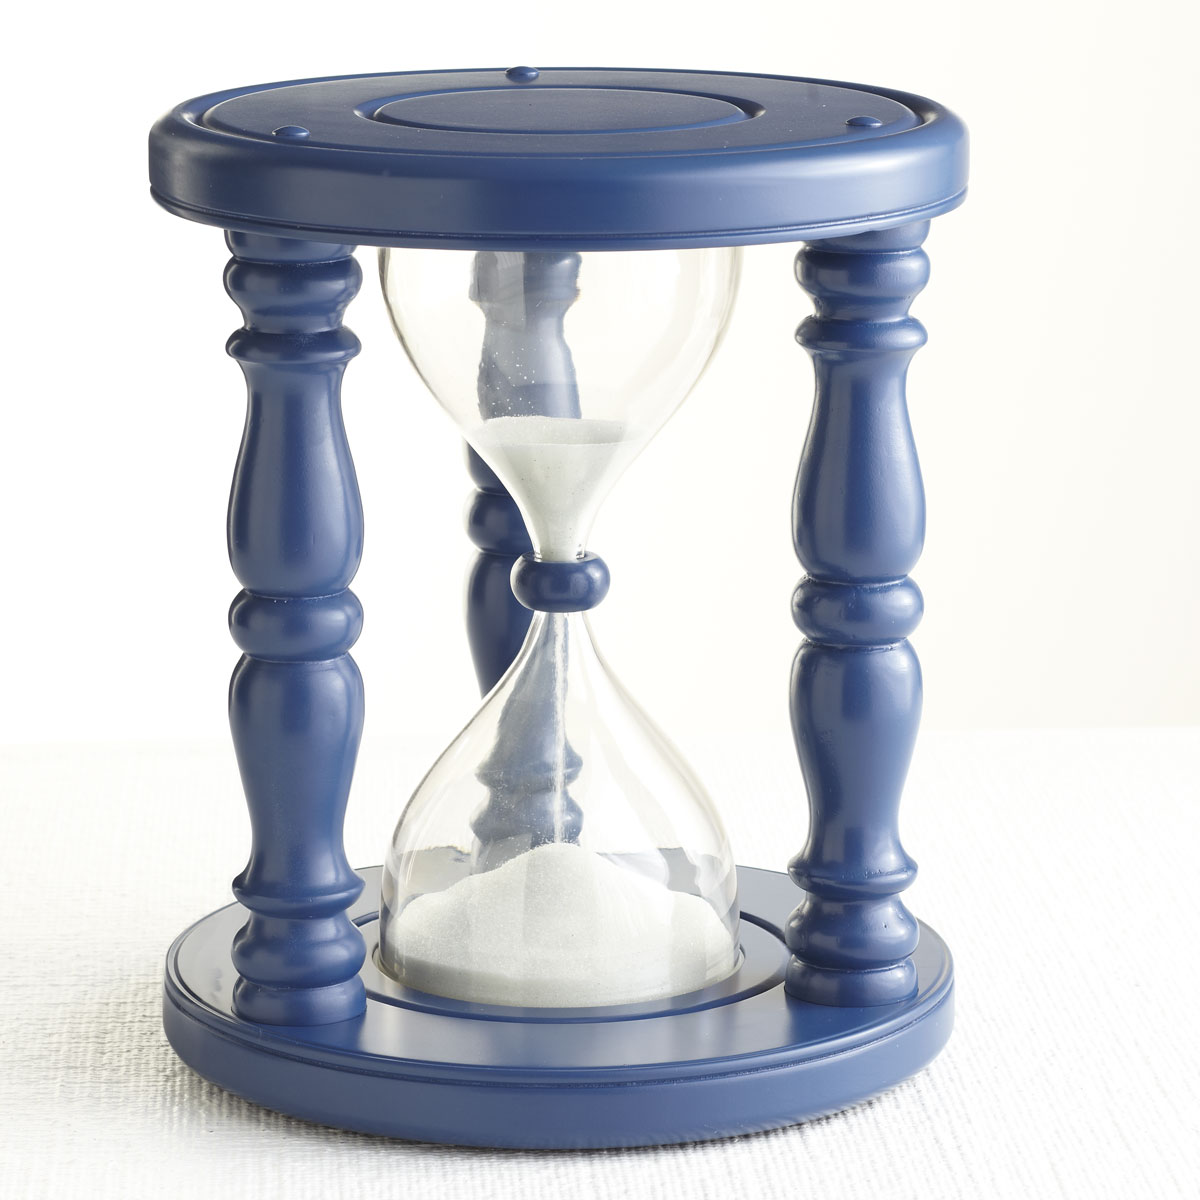 Time Out Timer Stool by Wisteria